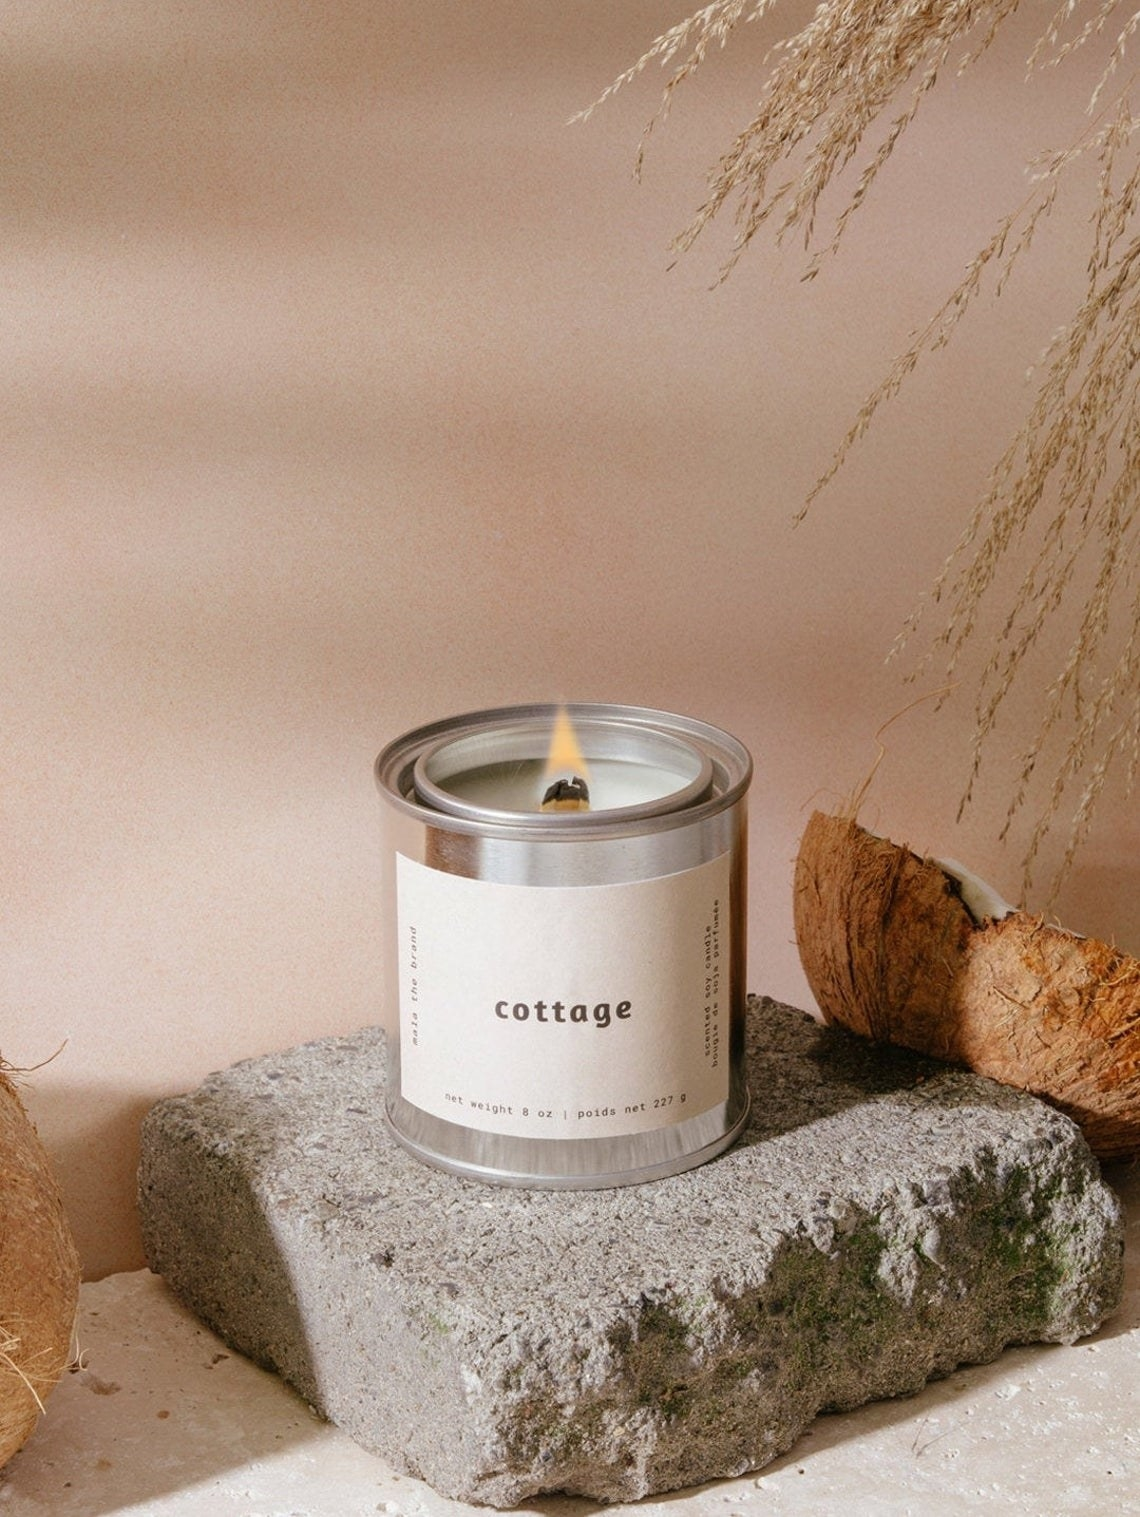 A lit candle in a metal tin